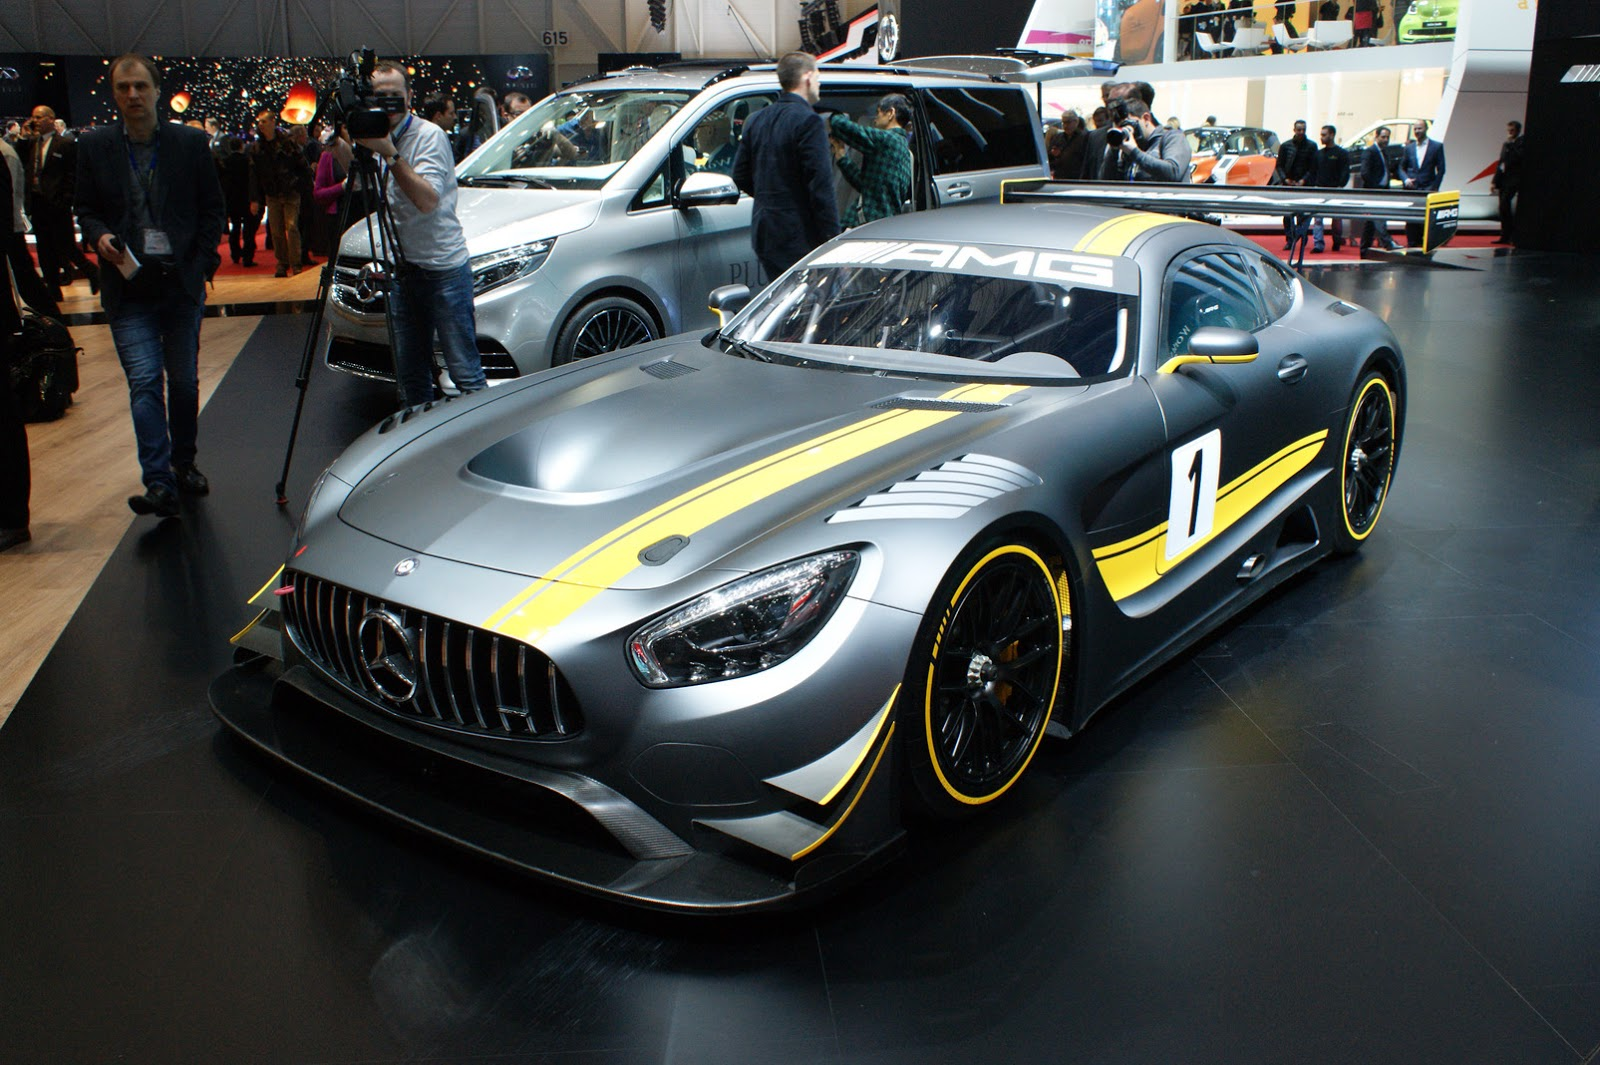 Mercedes Amg S Gt3 Racer Could Inspire A Production Model